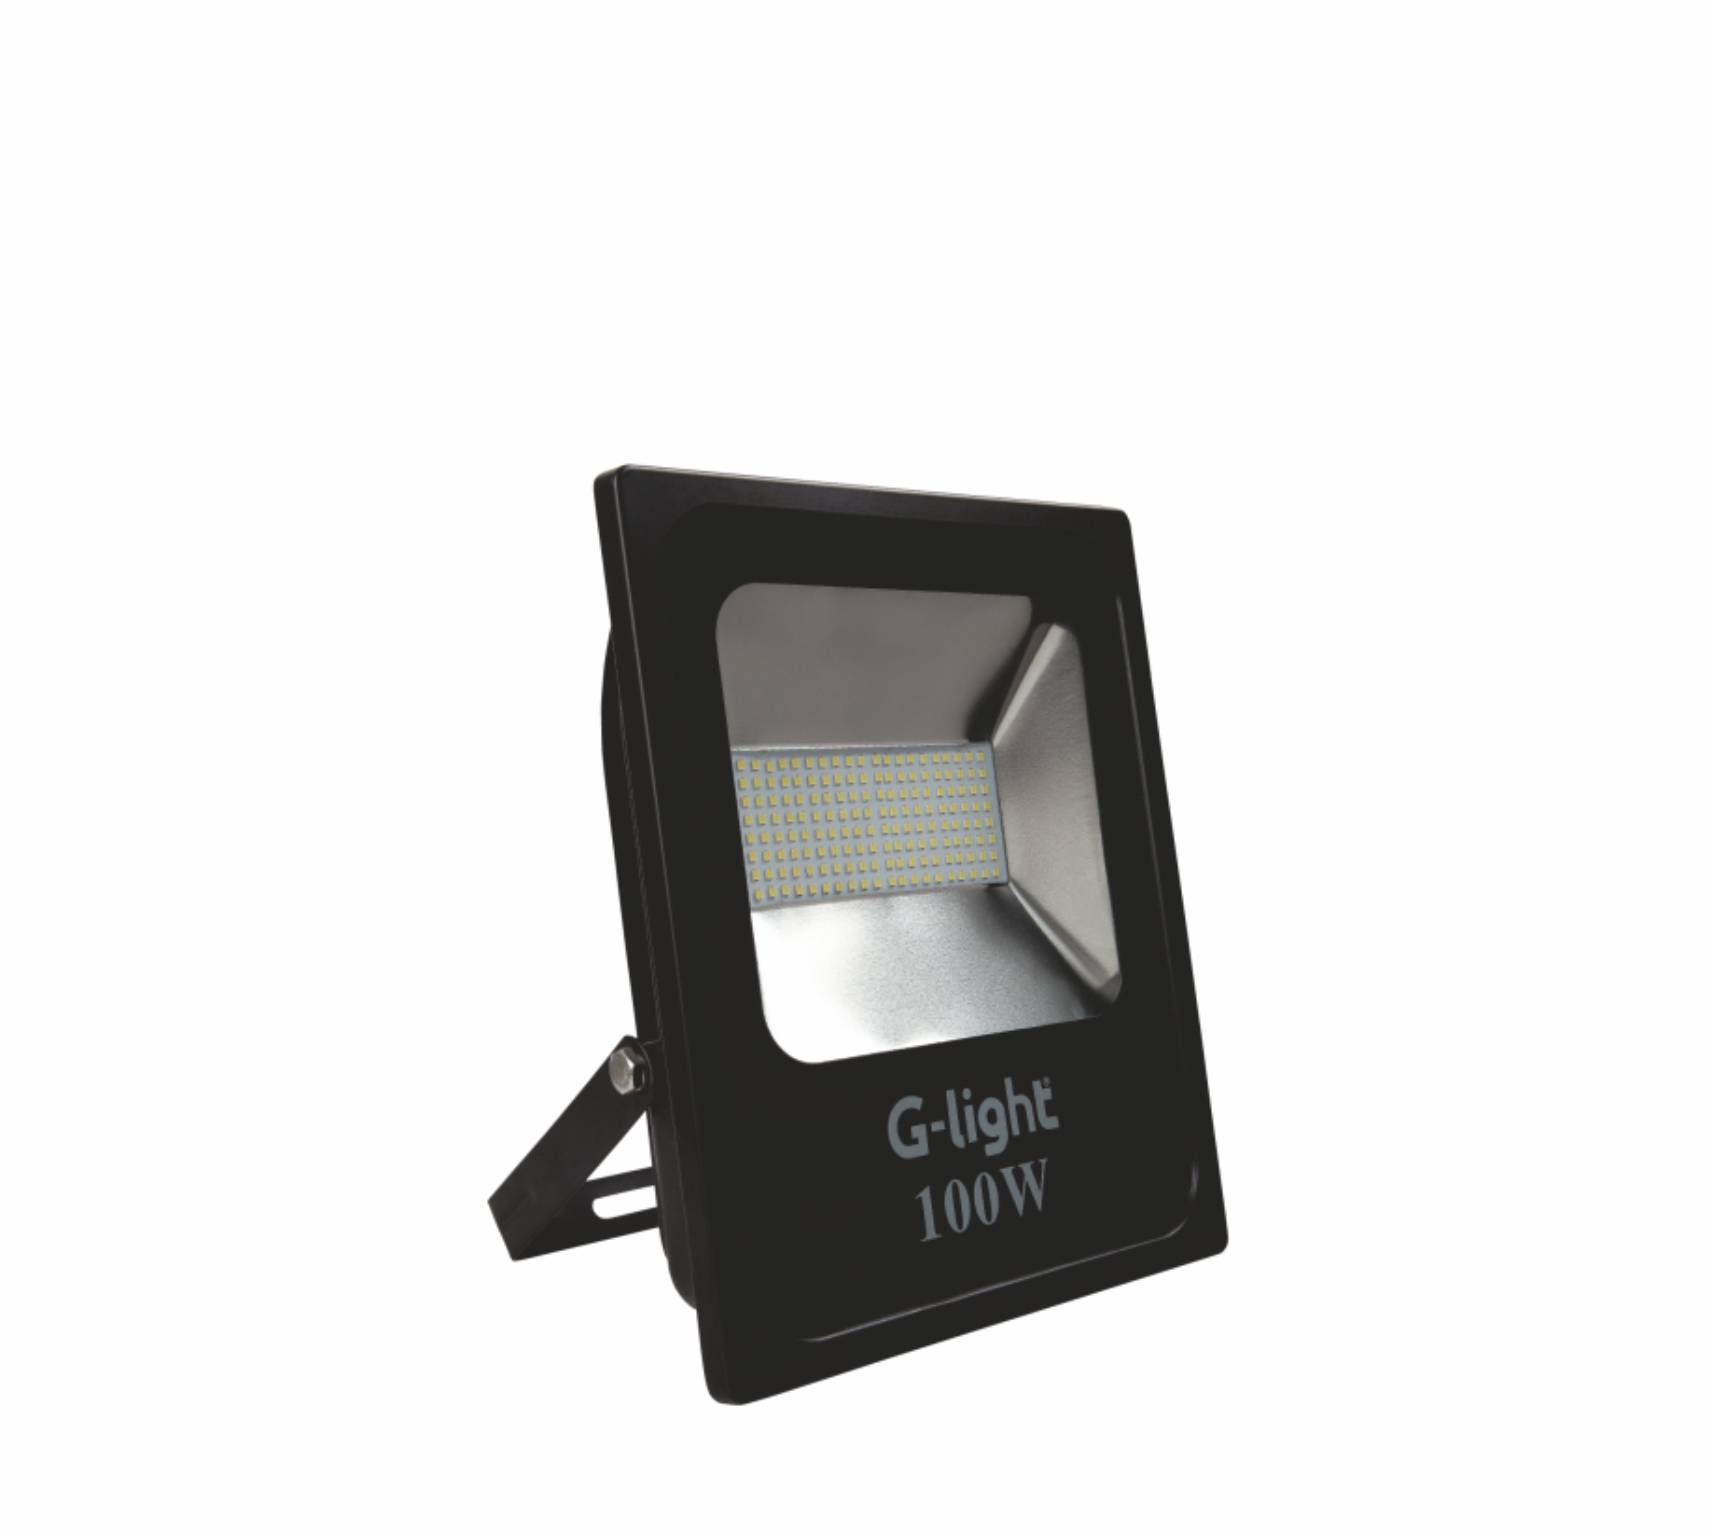 Refletor Led 100w Slim 6.500k Luz Branca 220v G-light.